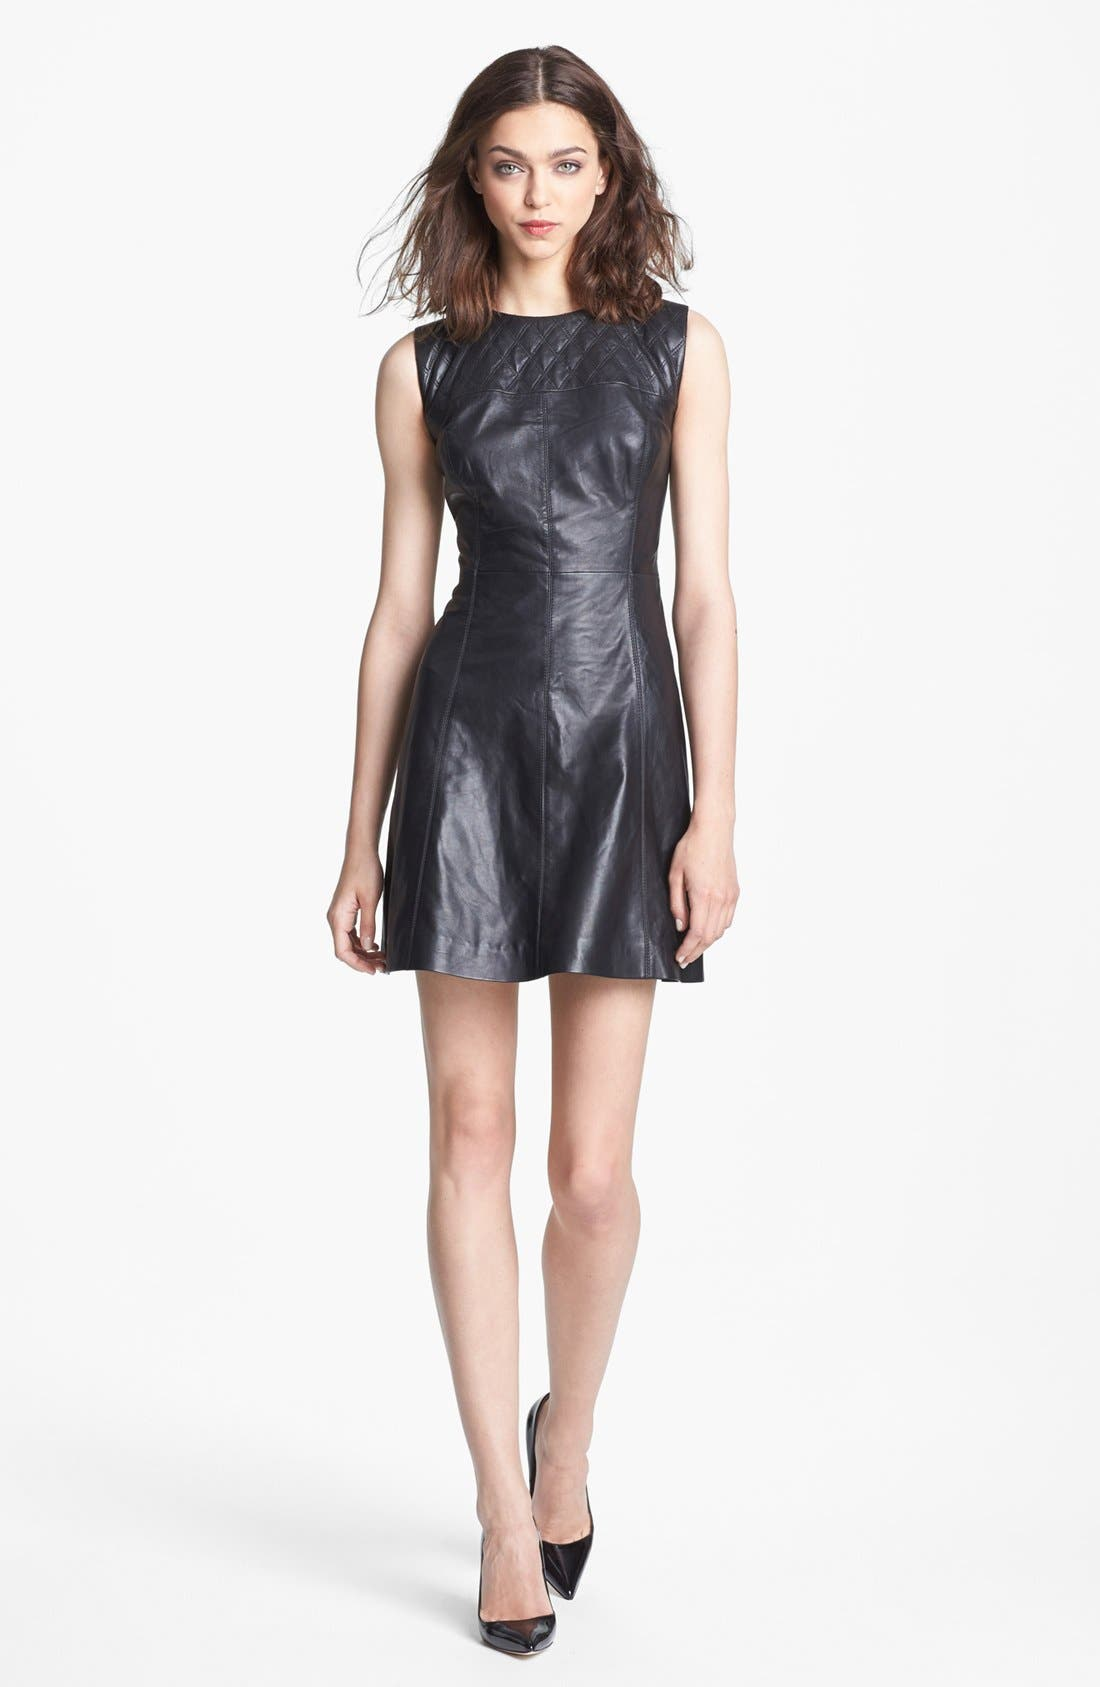 Alternate Image 1 Selected - Miss Wu Leather Dress (Nordstrom Exclusive)